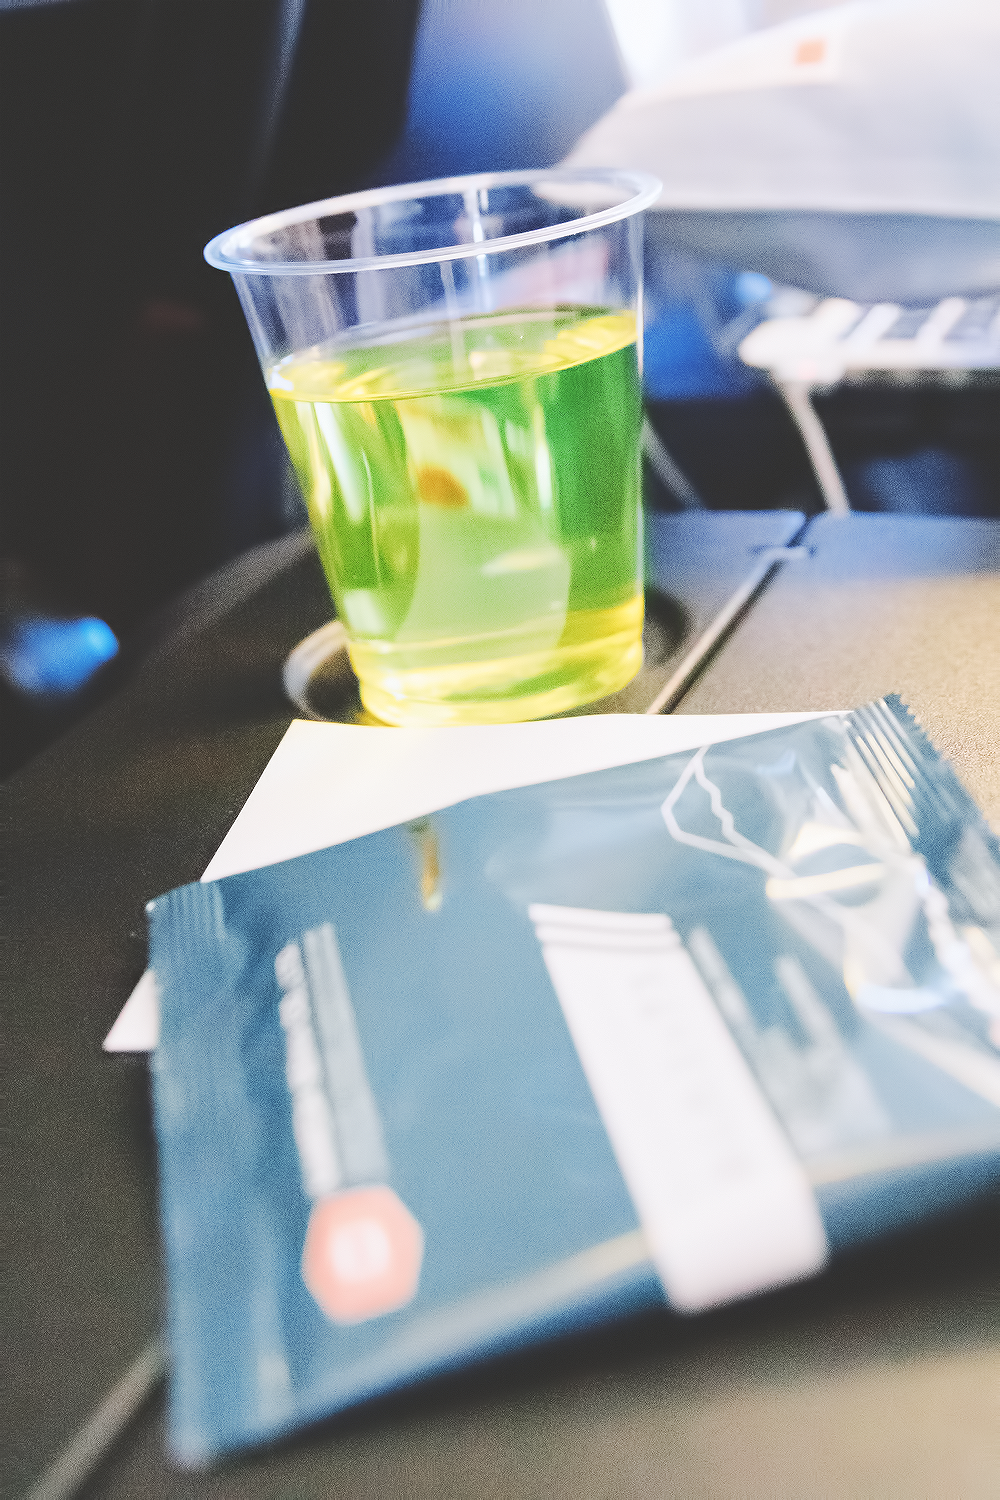 JAL has a delicious kiwi juice called Sky Time that I highly recommend. They also gave us rice snacks to start. Side note: all of our flight attendants were so sweet and patient throughout our flight. They even had a basket of snacks in the back that we could pick from at any time.